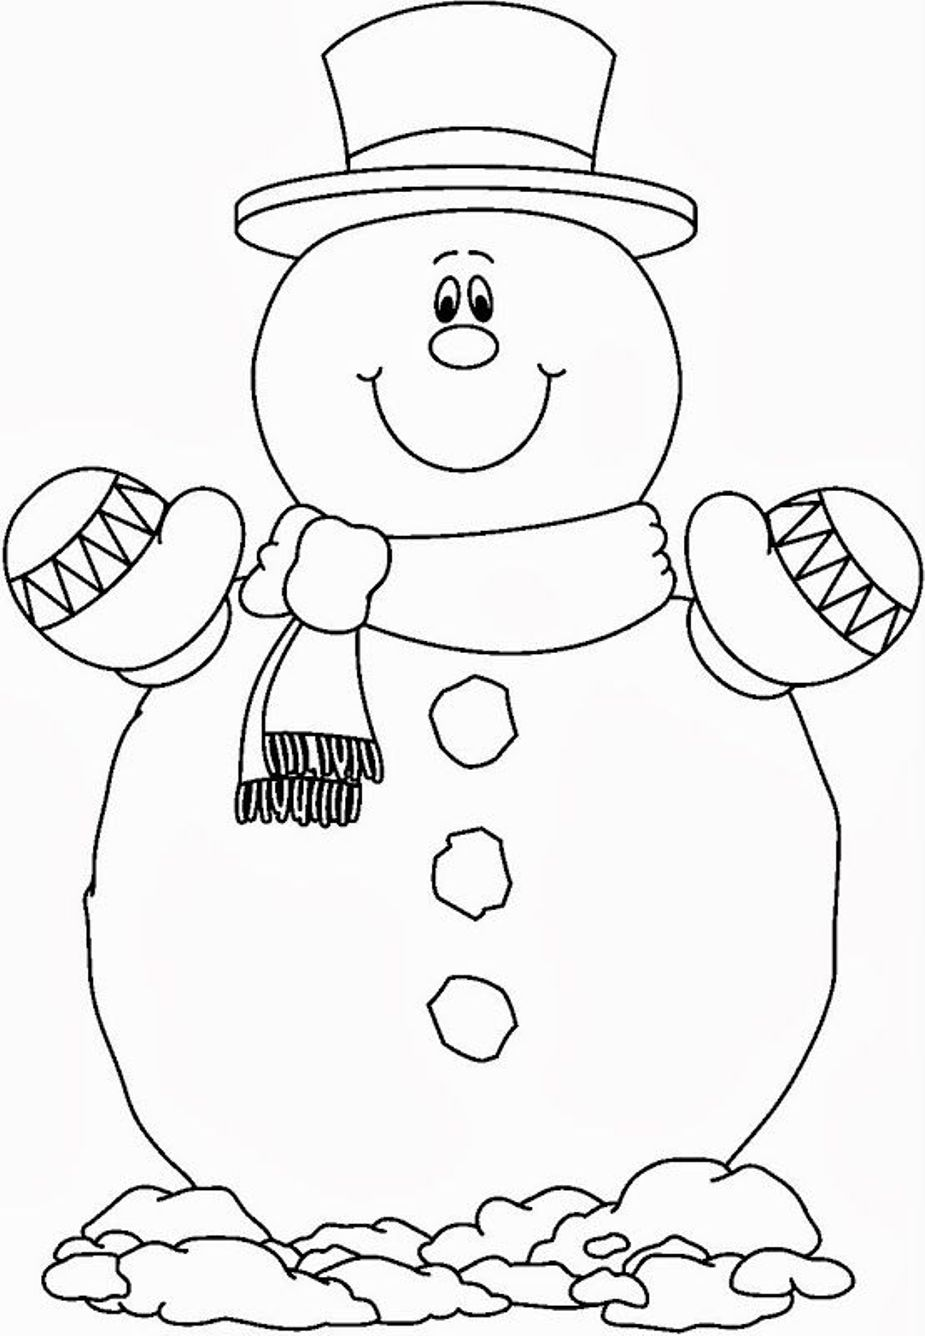 snowman free coloring pages - photo#9